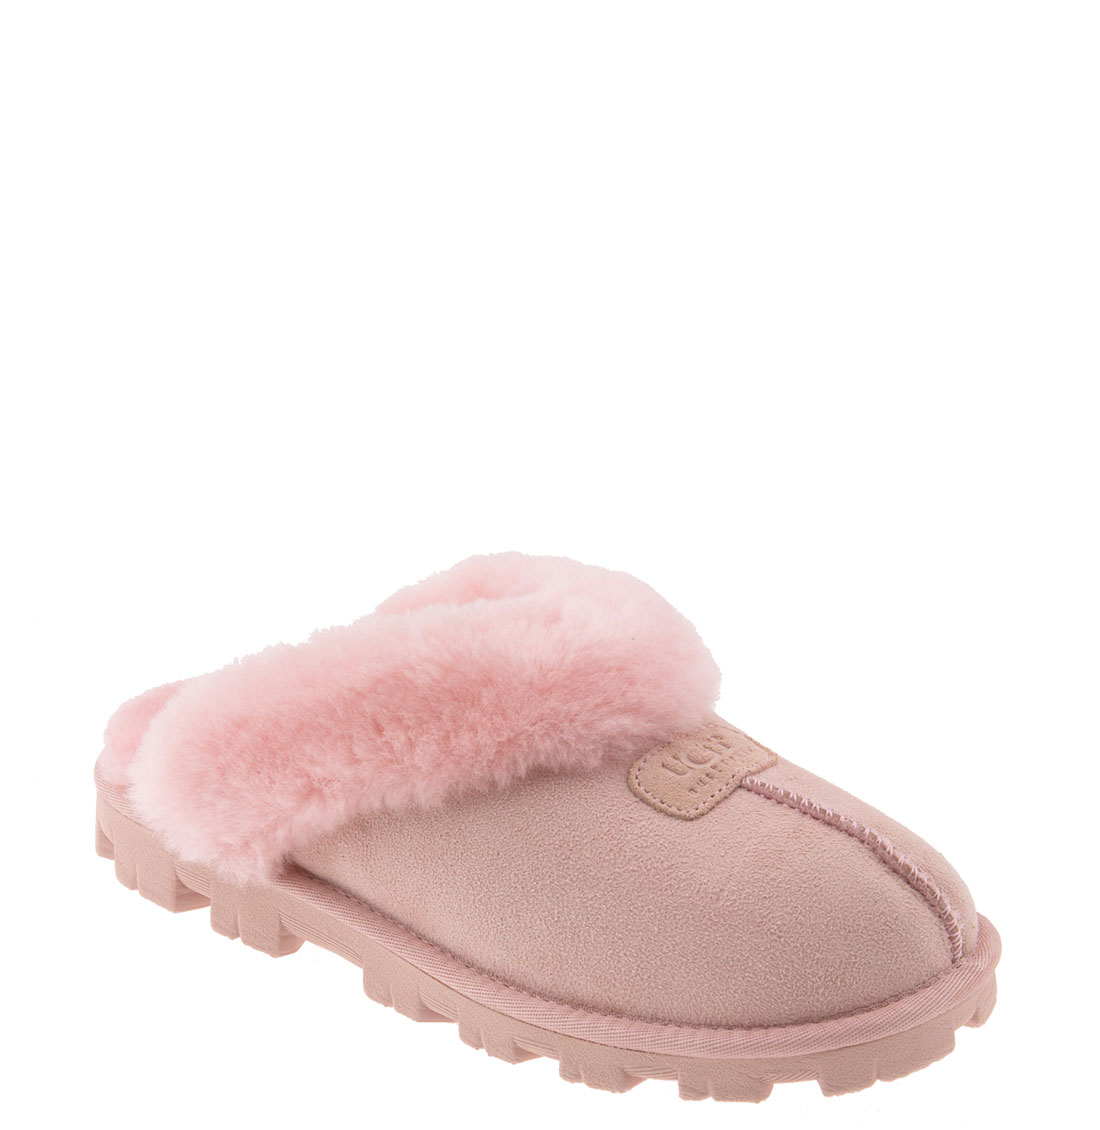 women's ugg coquette slipper shoes